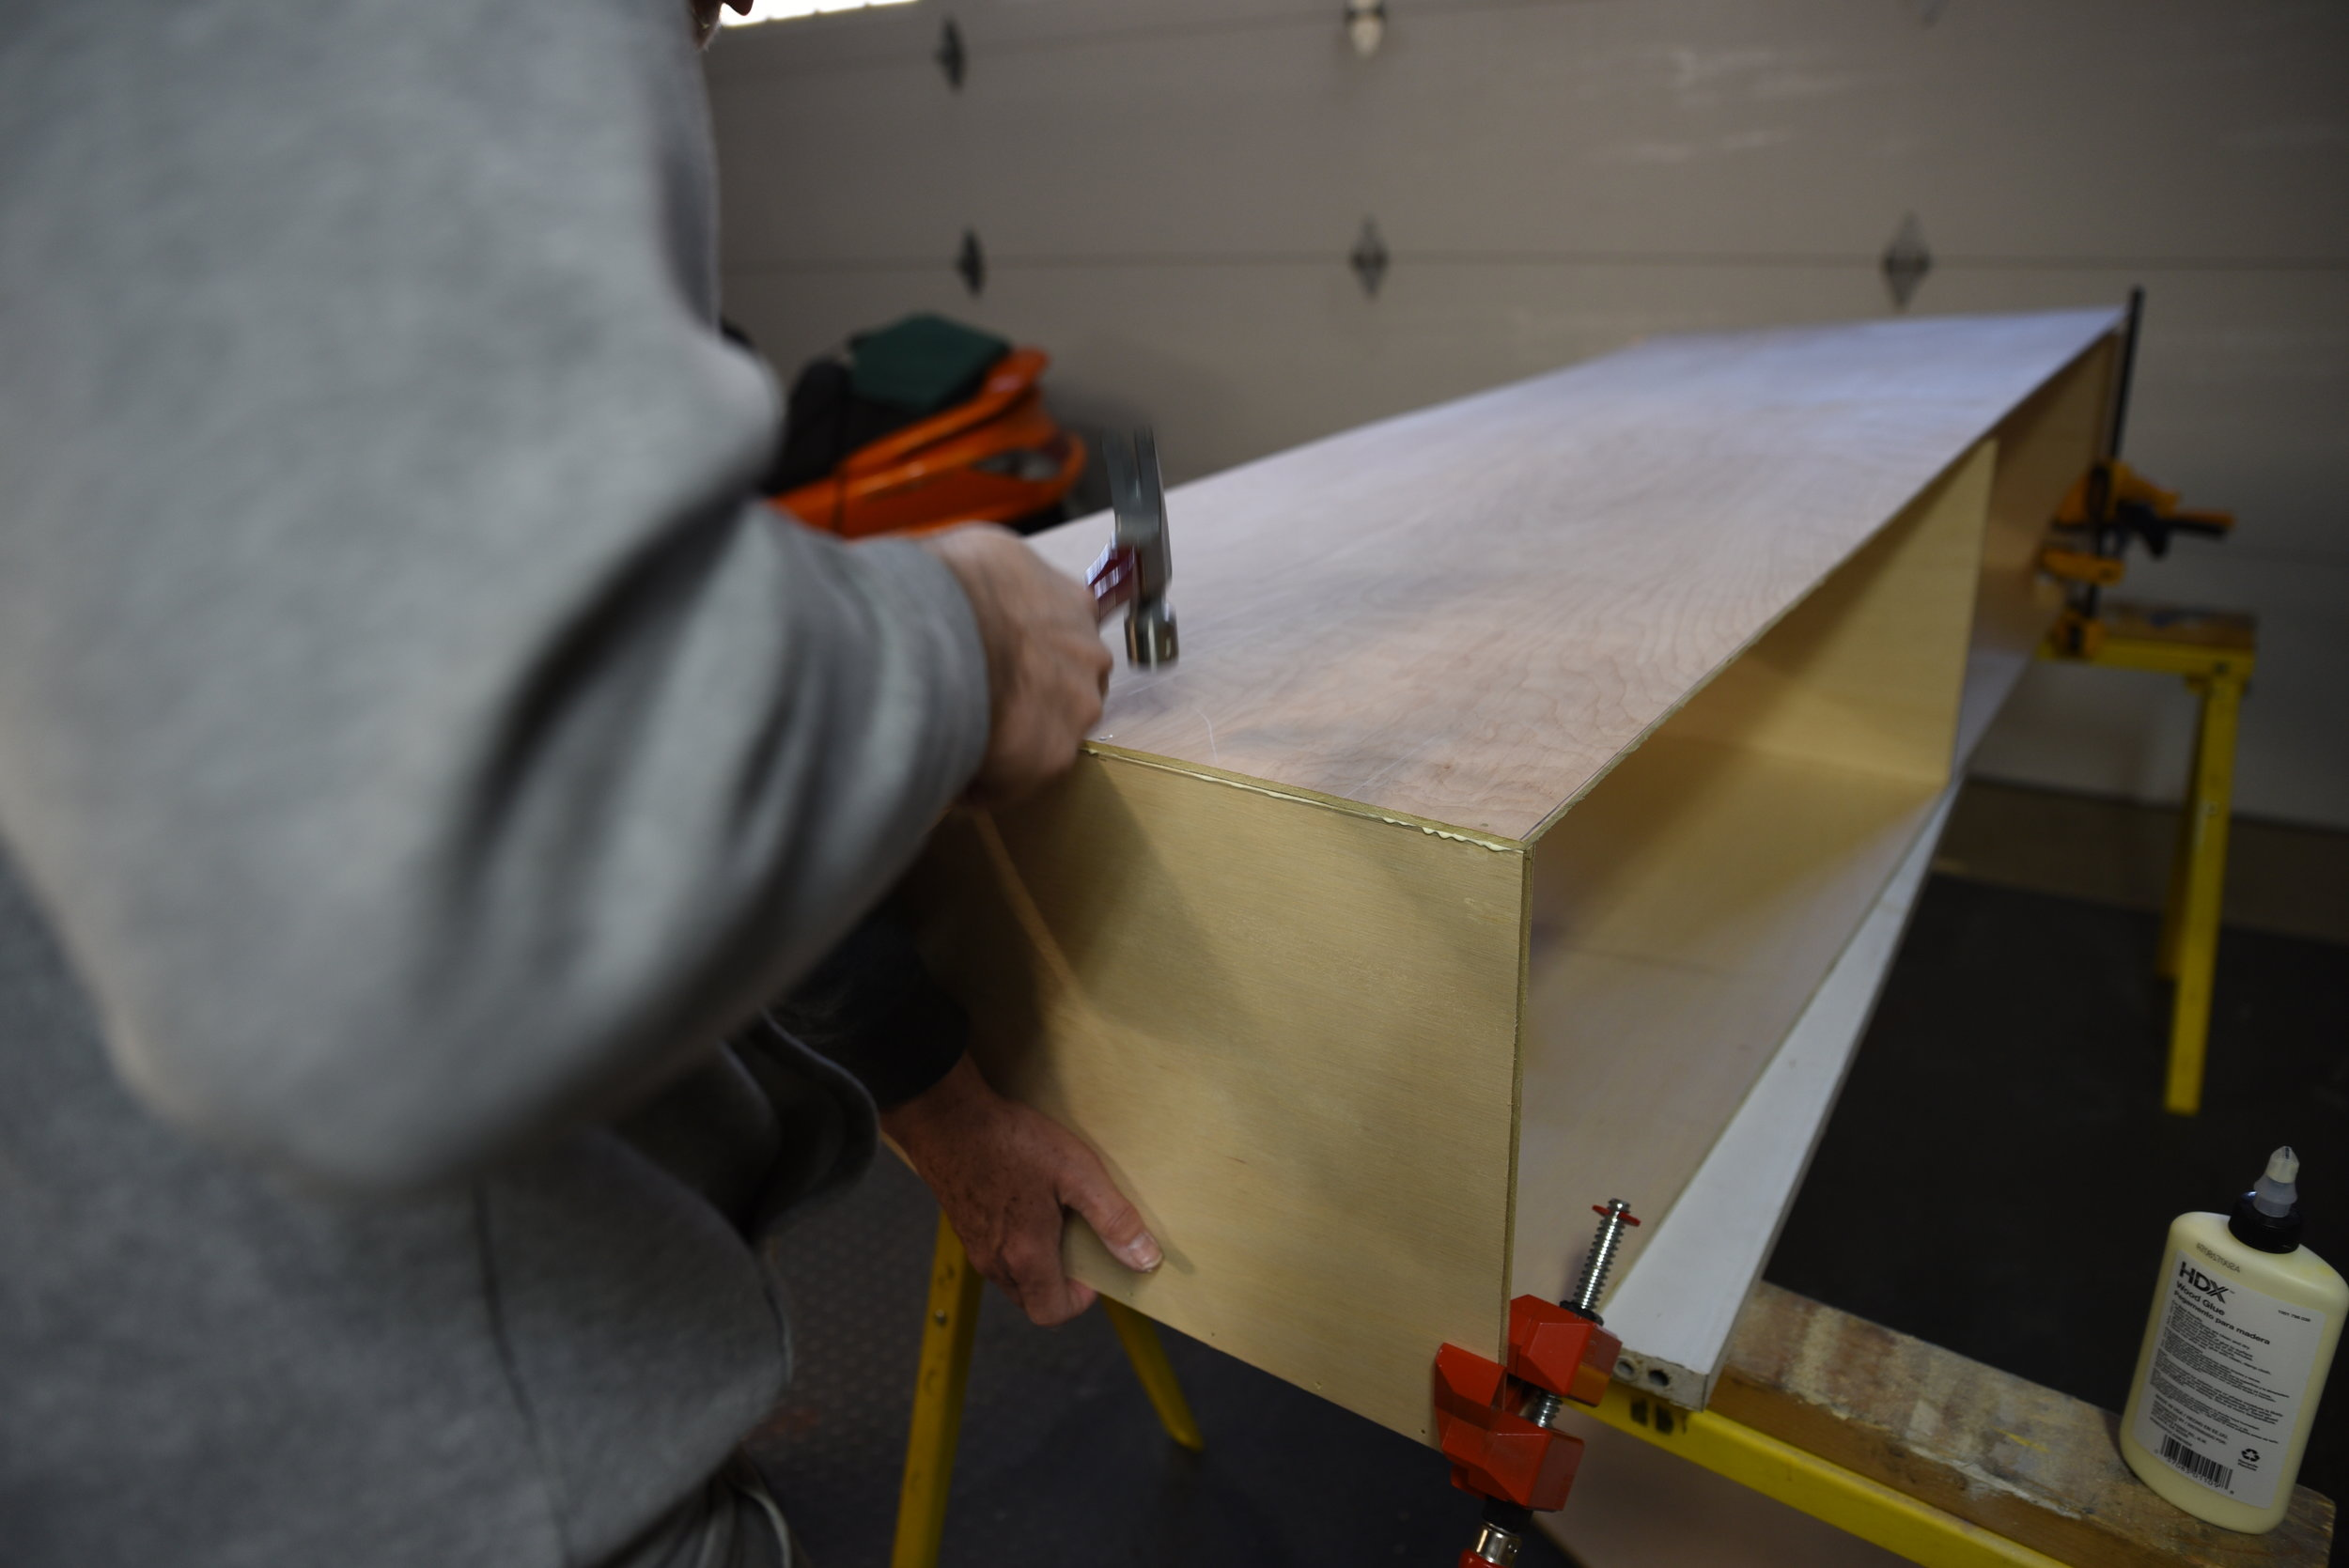 Ian joins the 1/4 inch cabinet back to the 1/2-inch plywood uprights.